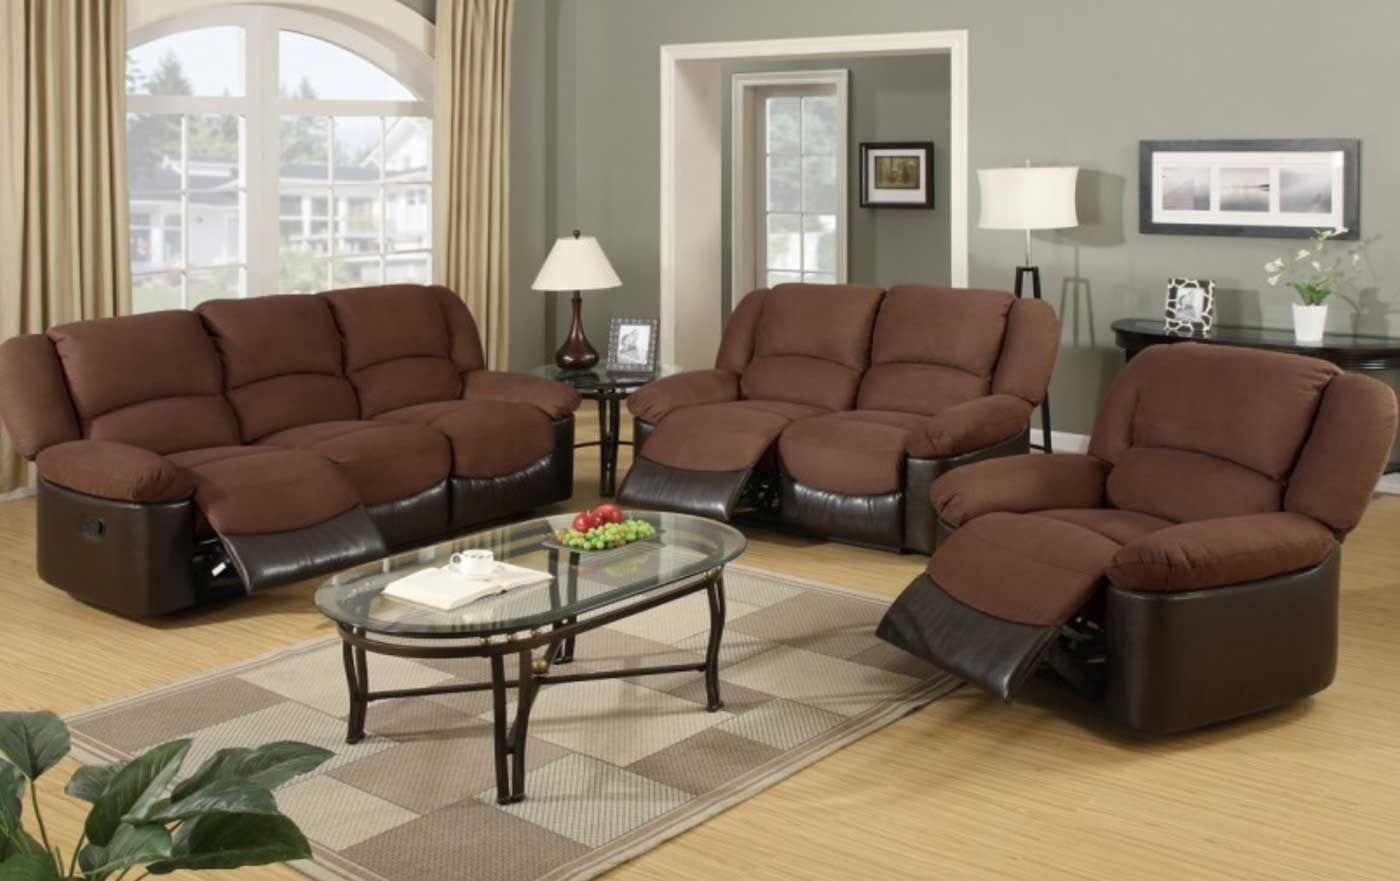 3 Pc Two Tone Saddle Microfiber And Espresso Leather Like Vinyl Upholstered Motion Reclining Sofa